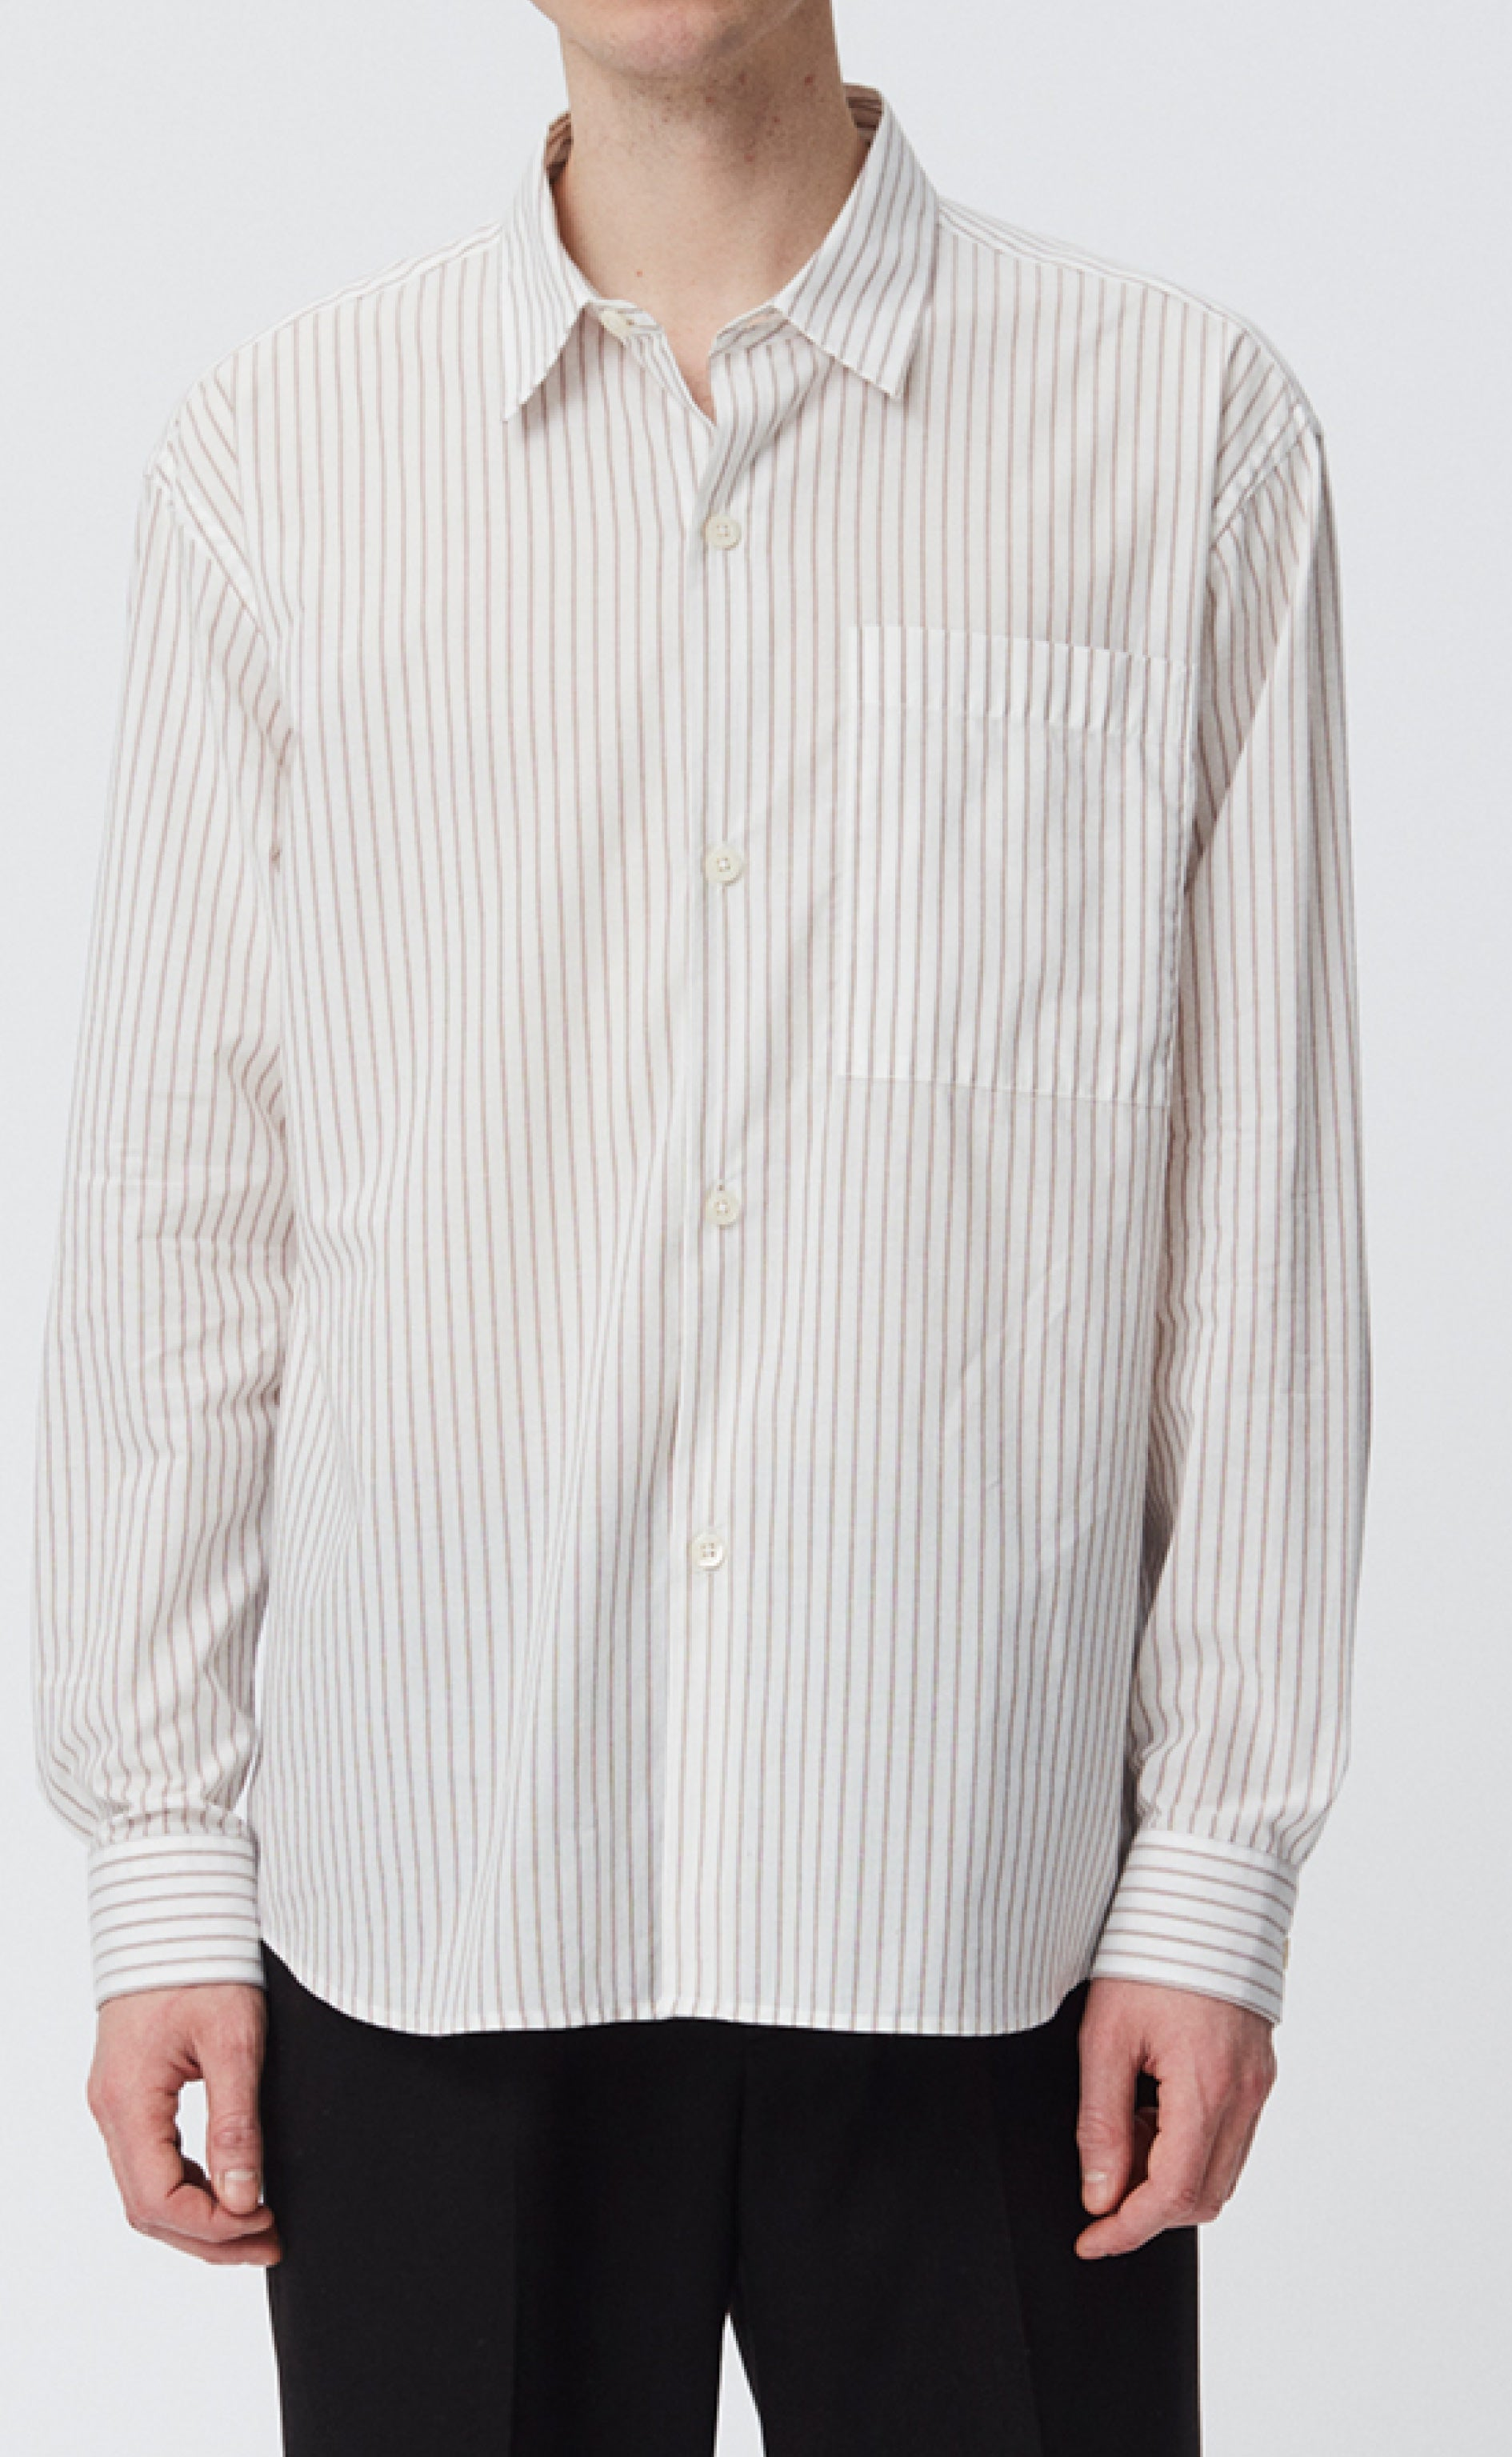 DISTANT SHIRT - CREAM STRIPE